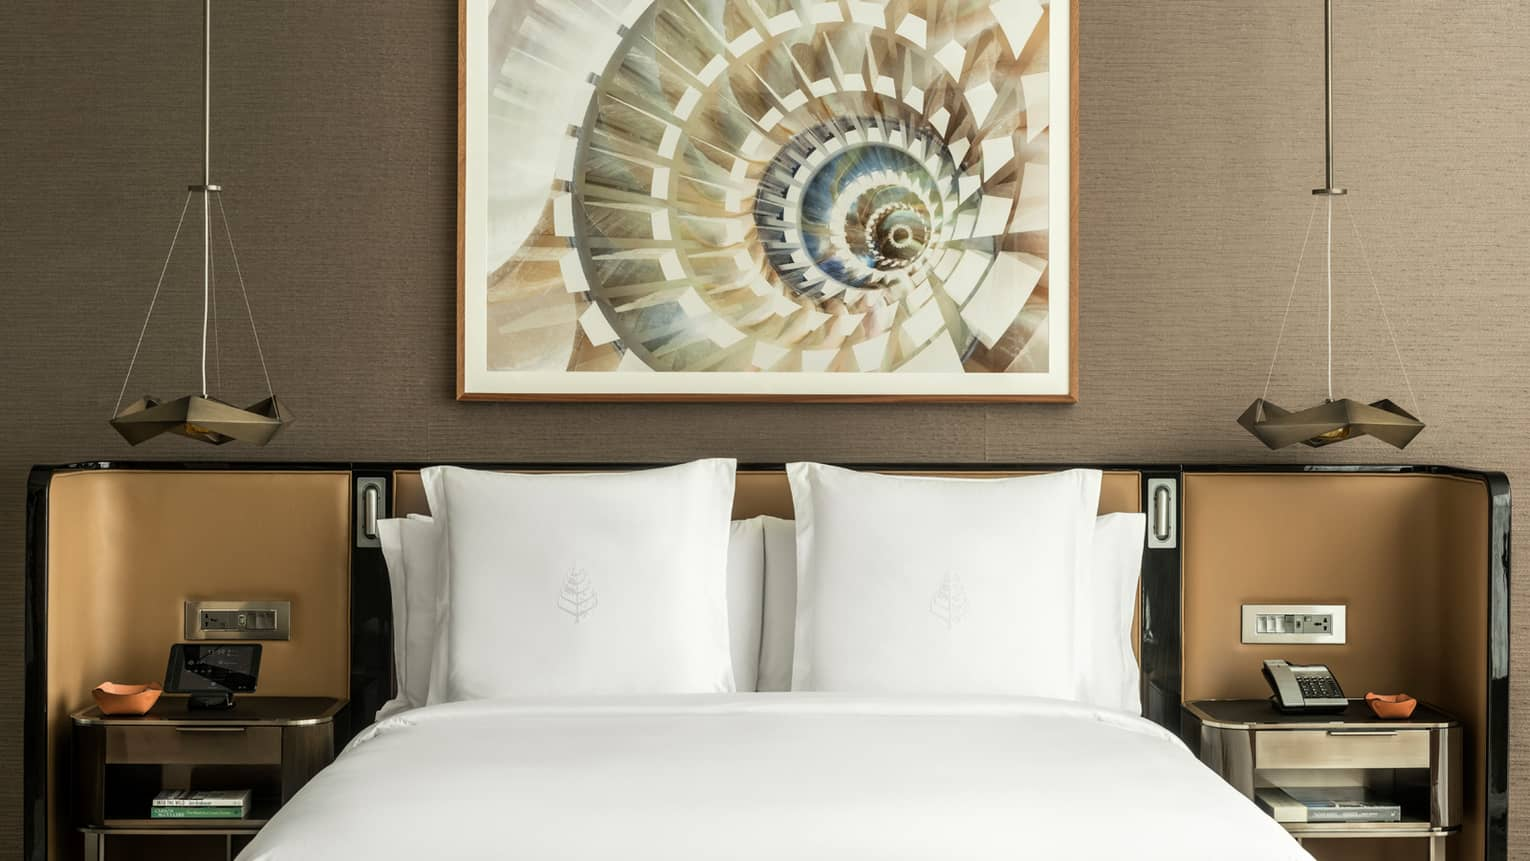 Top of bed with white linens, pillows against padded headboard and nightstands, art on wall